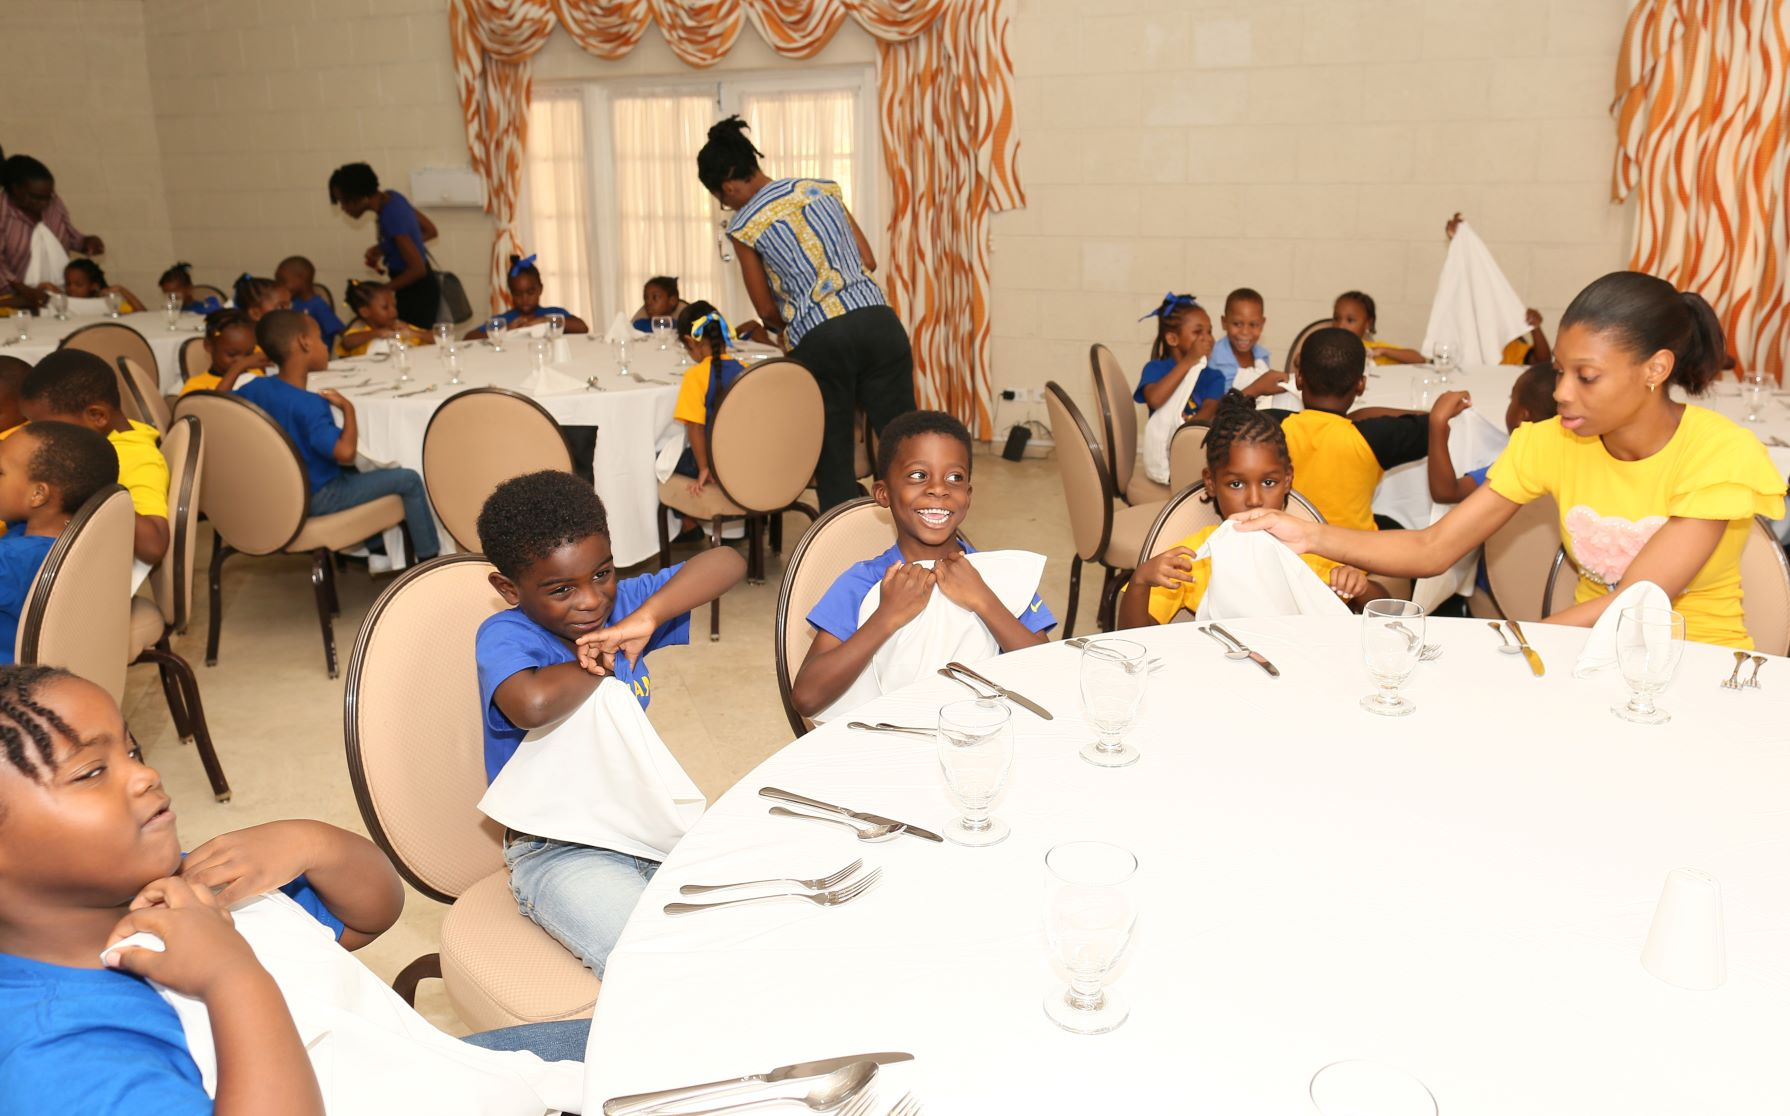 Tamarind Hotel's Operations Manager Antonia Hinds assisting some of the West Terrace Primary School students during their recent lunch and an etiquette session hosted by the St. James property.